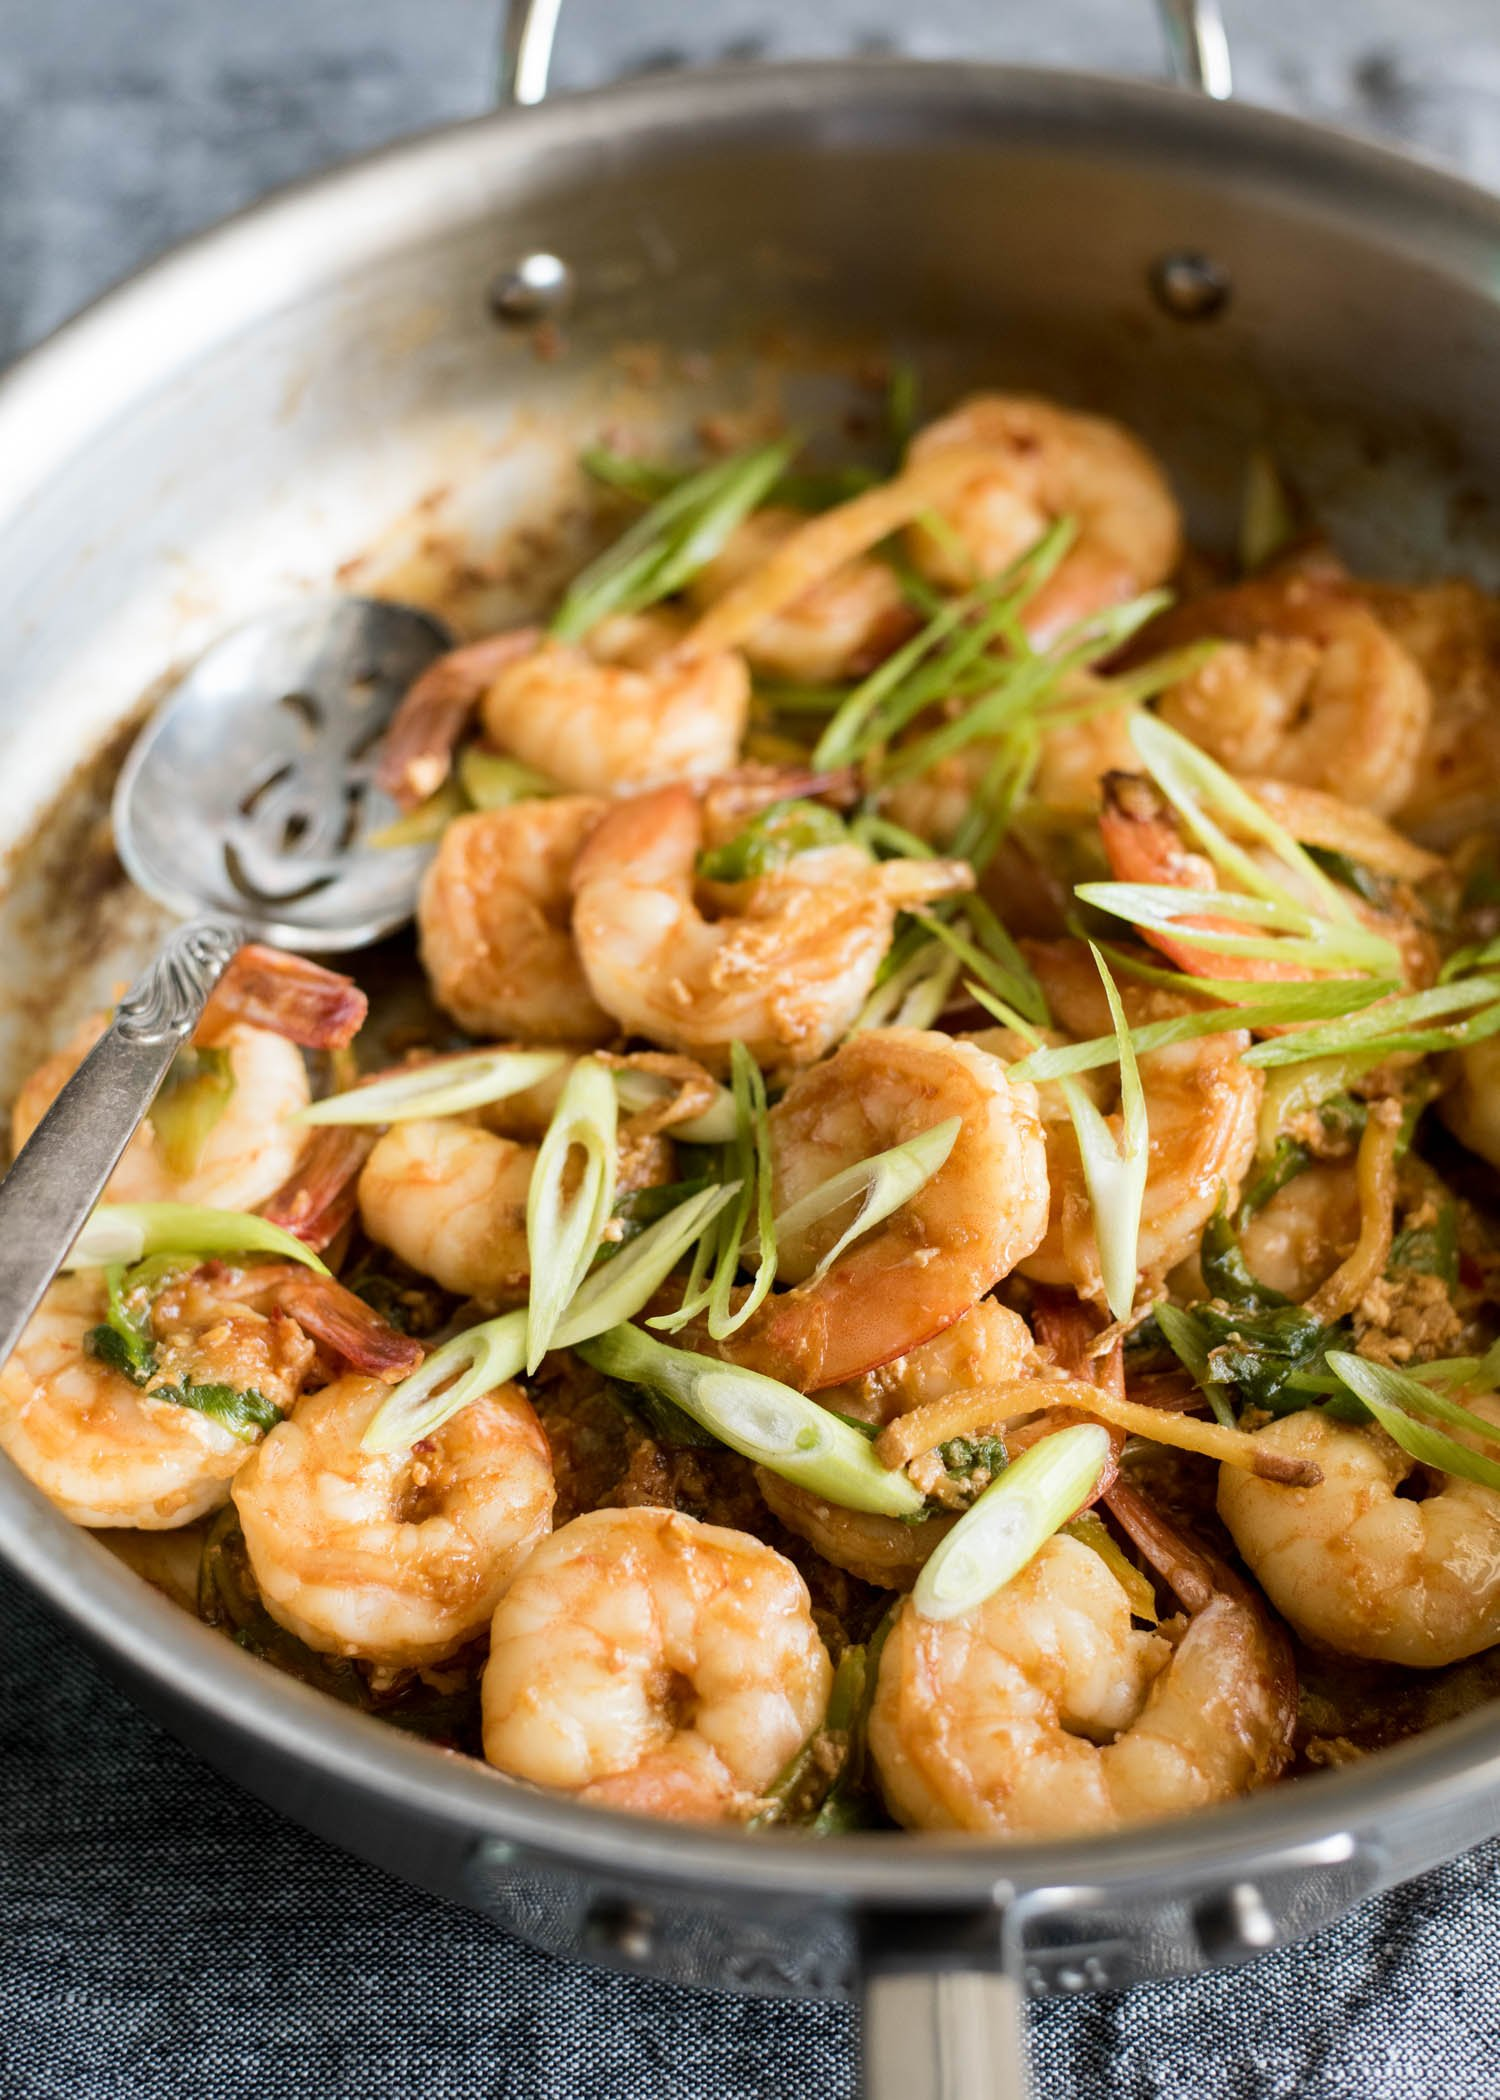 Chili Garlic Shrimp | cookandsavor.com